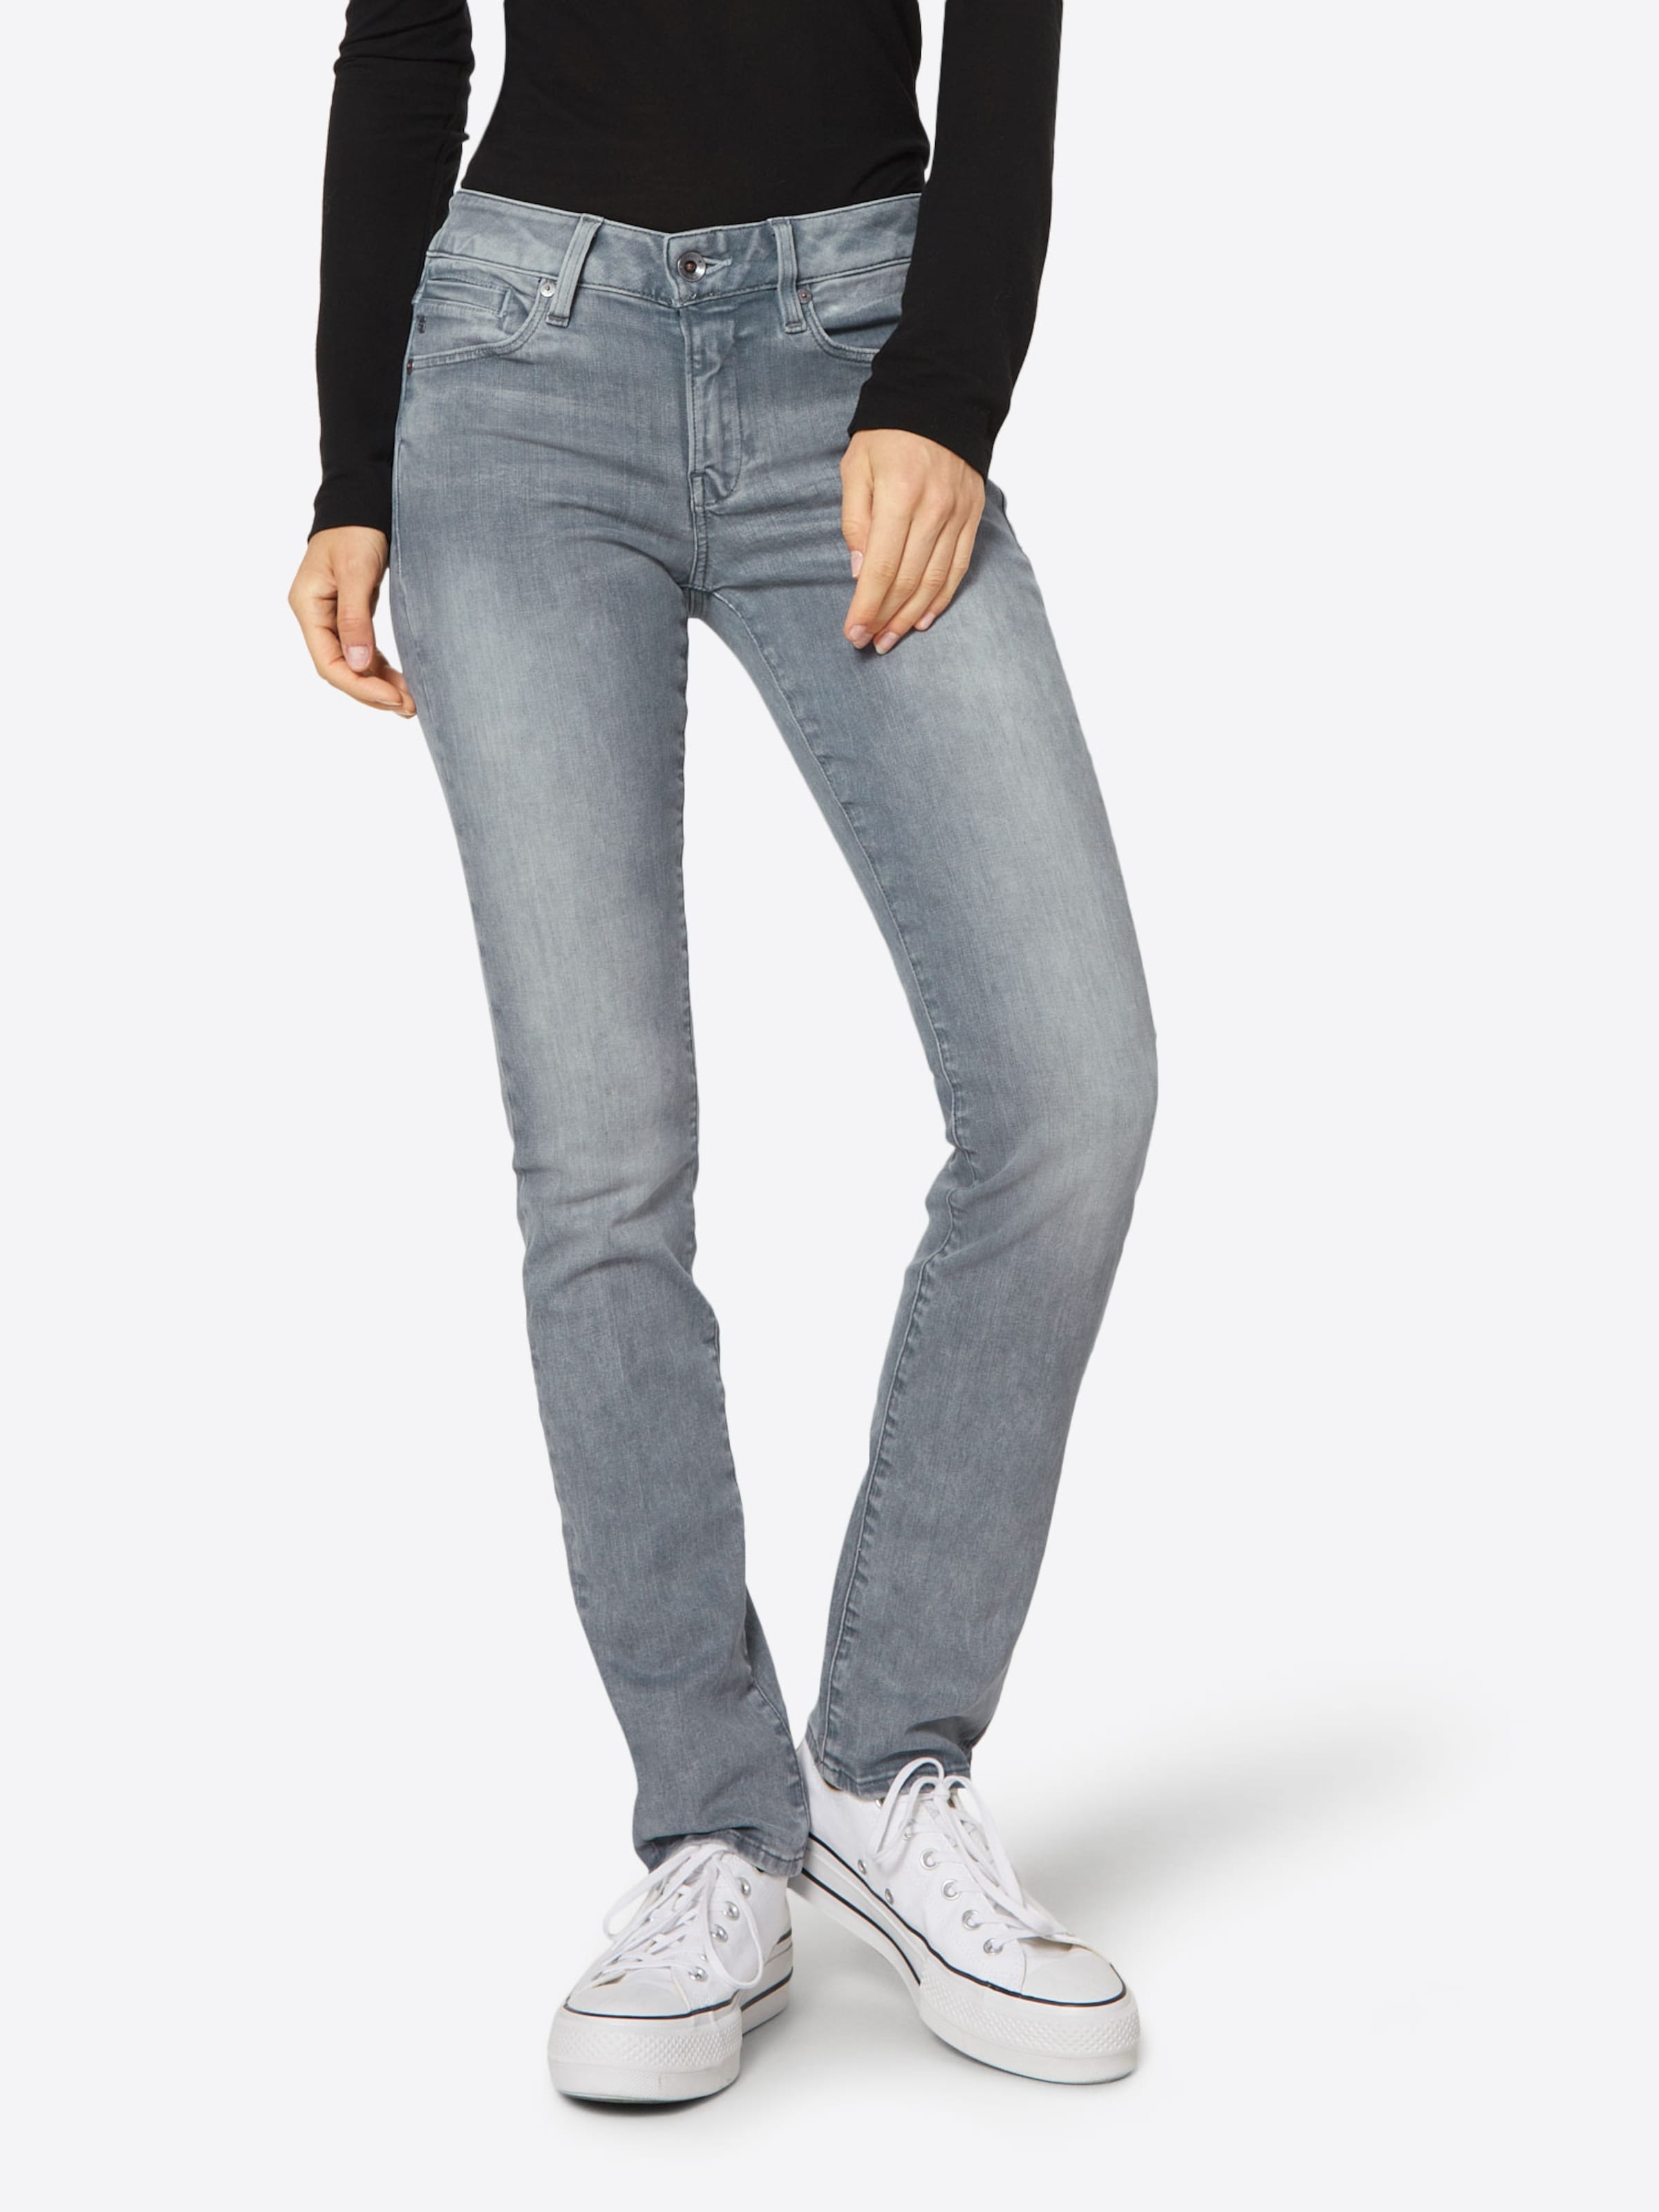 star Raw Jean Gris Denim En G n0kwP8O